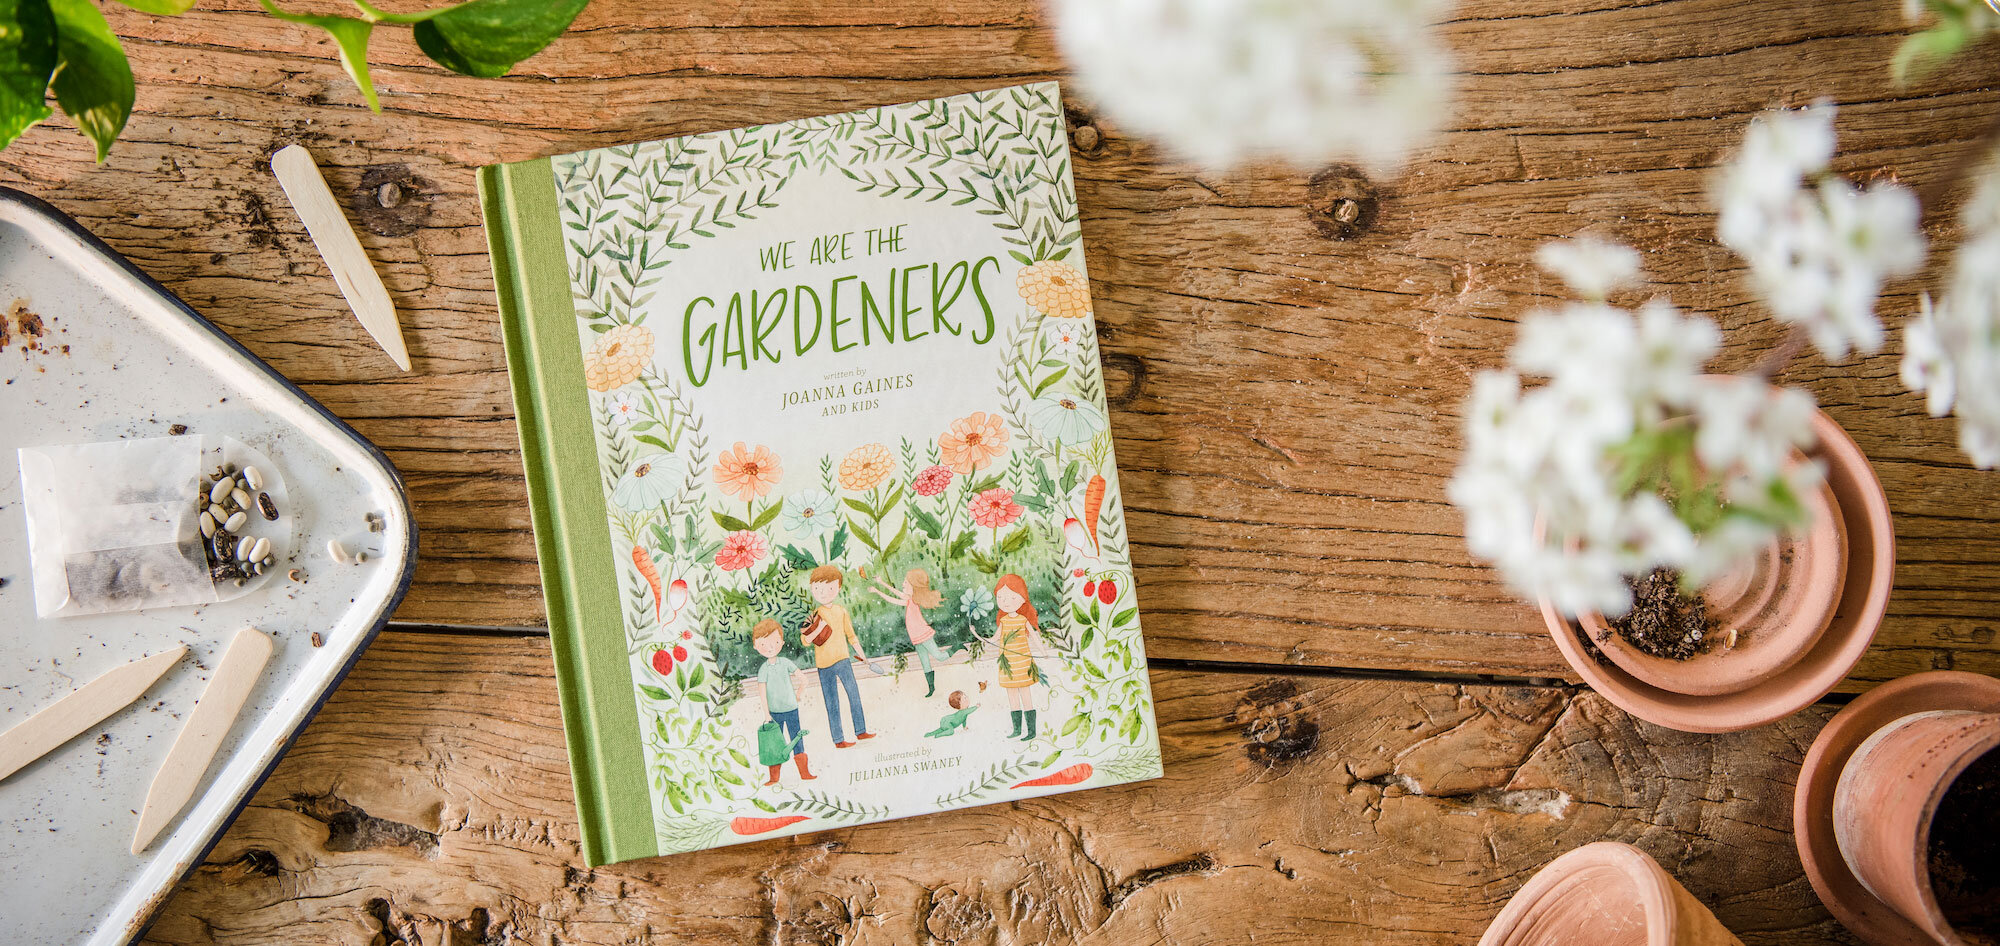 We Are The Gardeners - written by Joanna Gaines // Client: Harper Collins // Project Type: Hand-lettering on cover